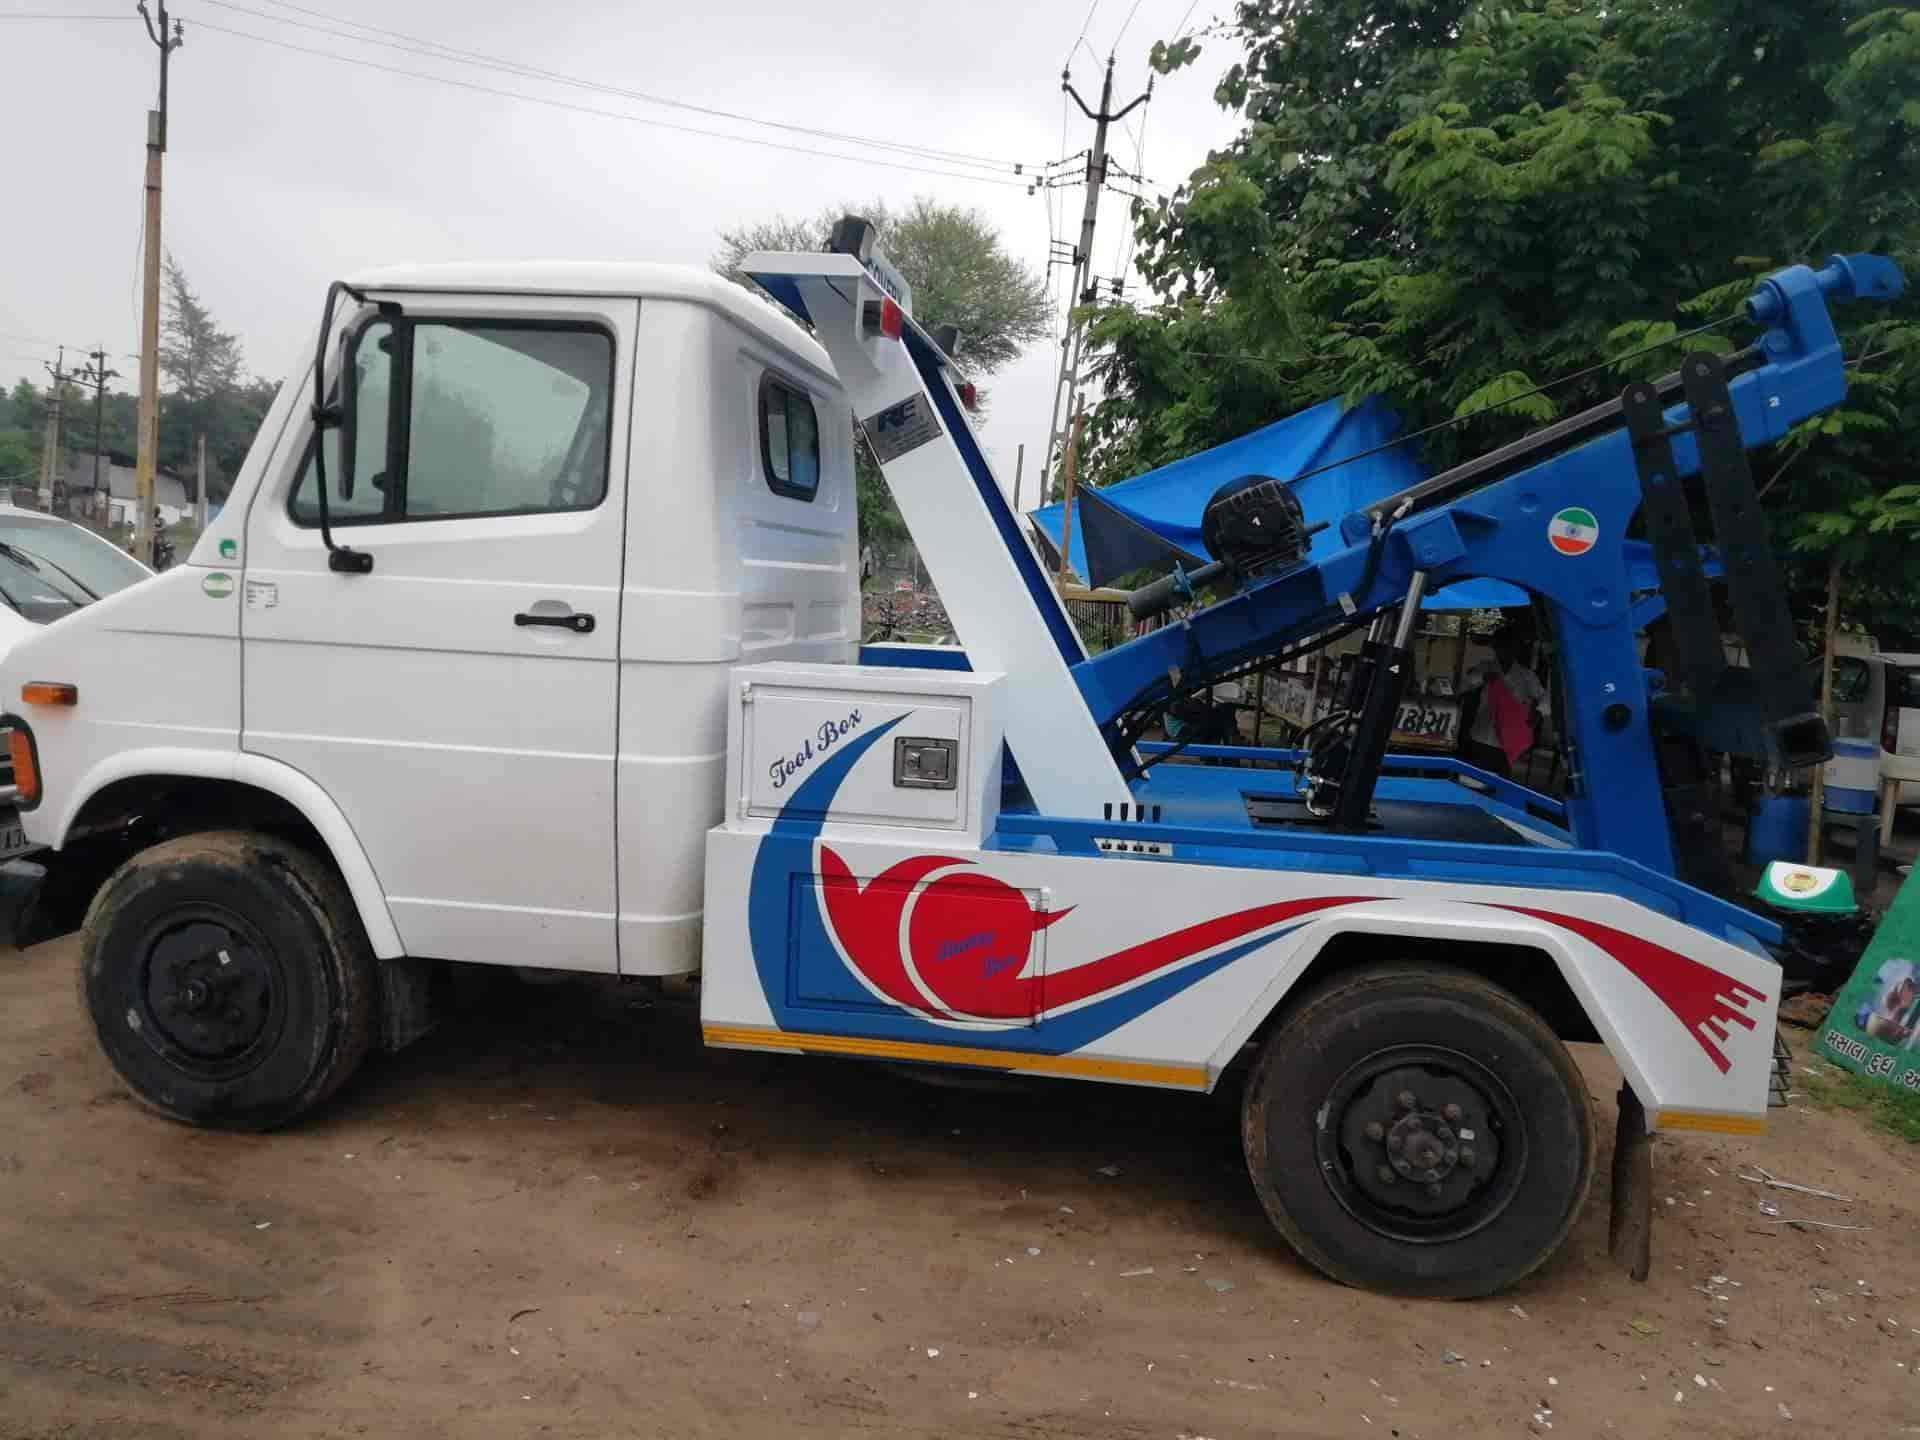 Top 100 Towing Services in Ahmedabad - Best Roadside Assistance - Justdial